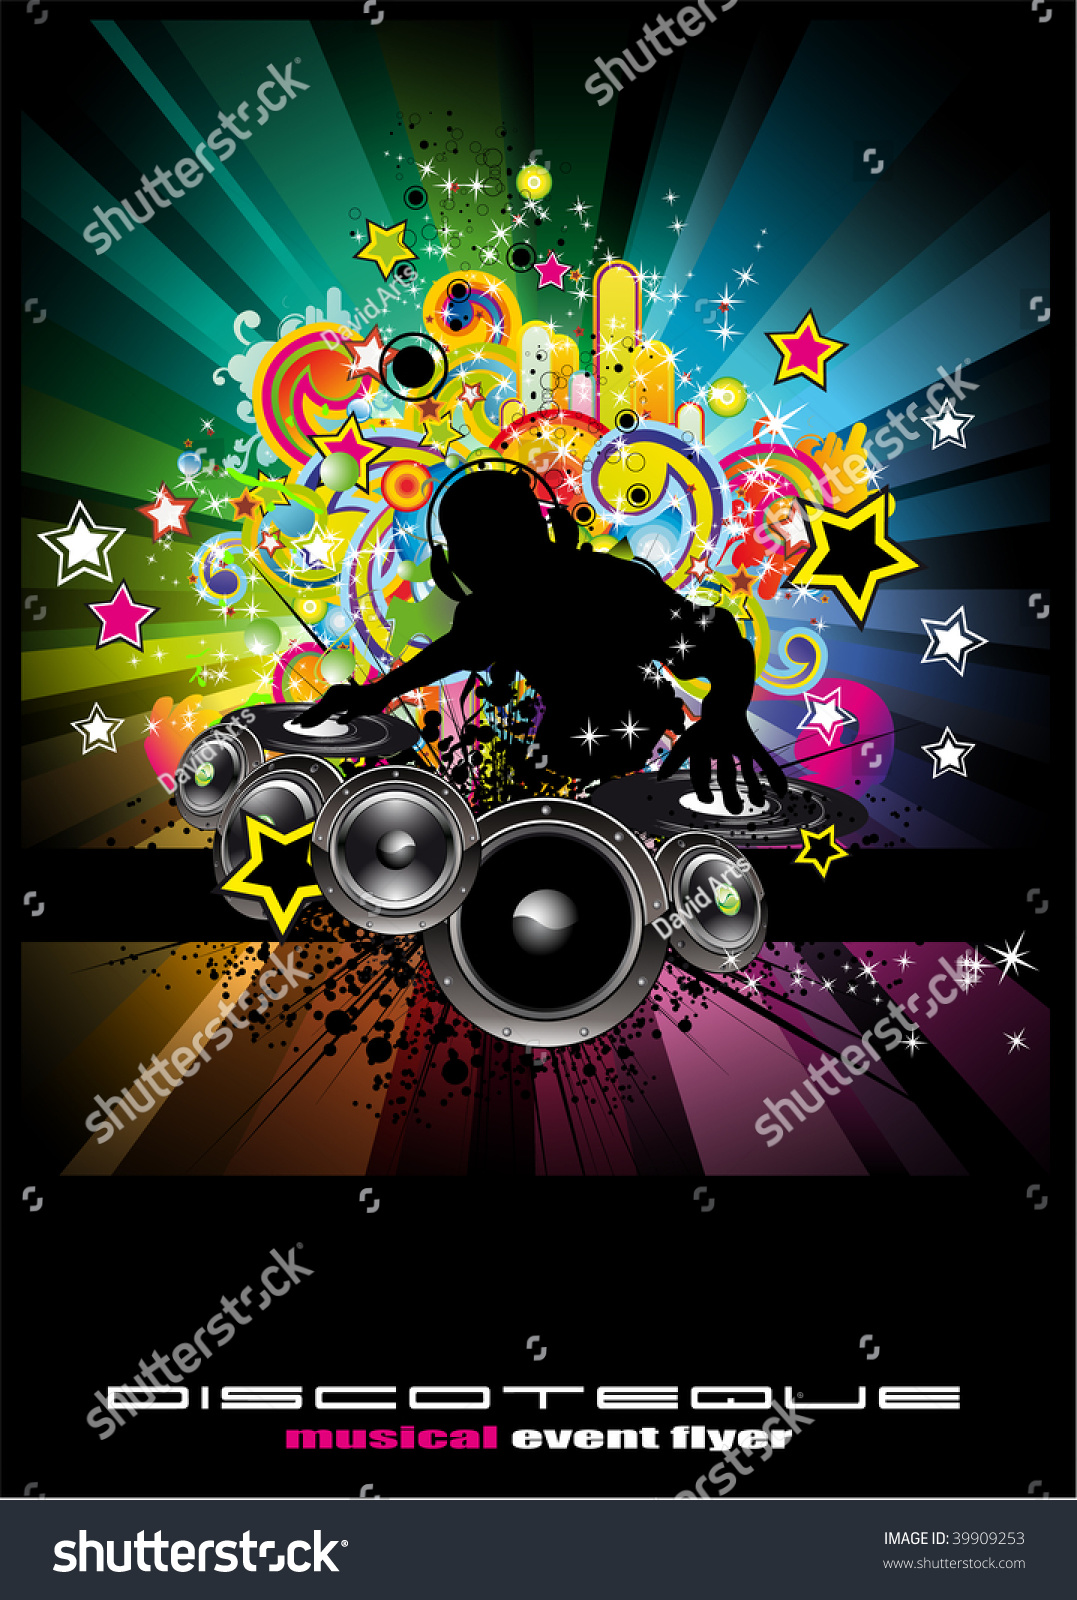 Music Event Background Flyers Posters Stockillustration 39909253